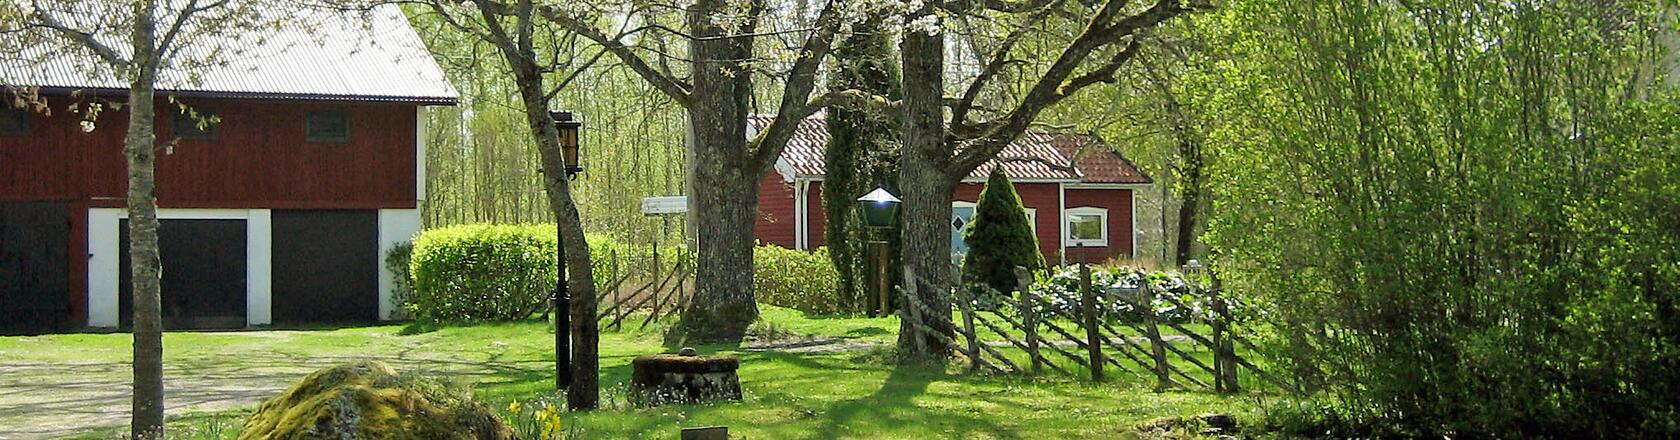 Västmanland in Sweden — Rent a holiday home with DanCenter